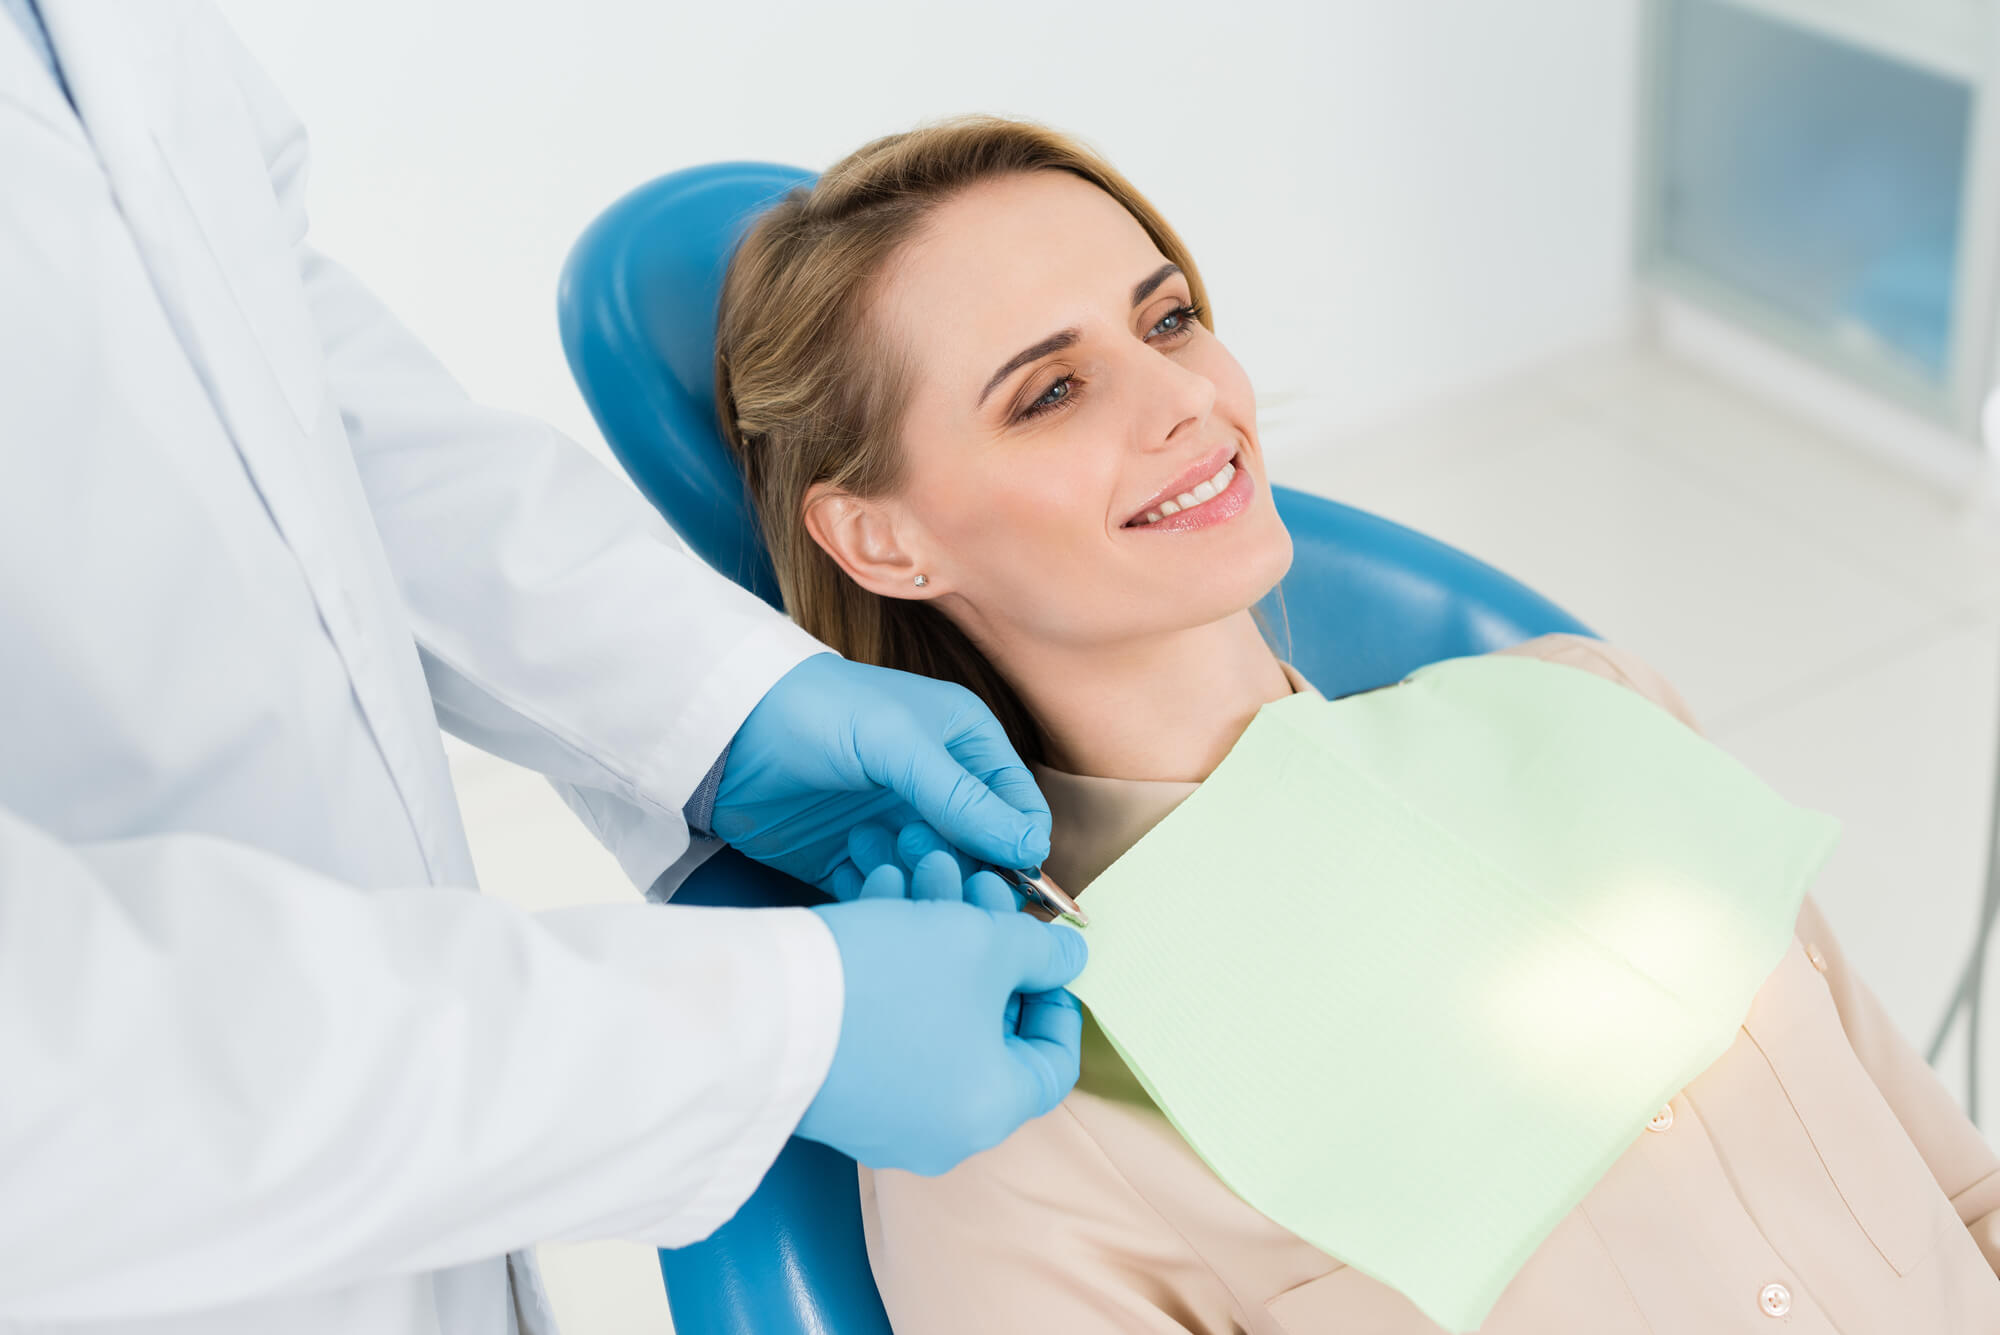 female patient smiling during her dental checkup